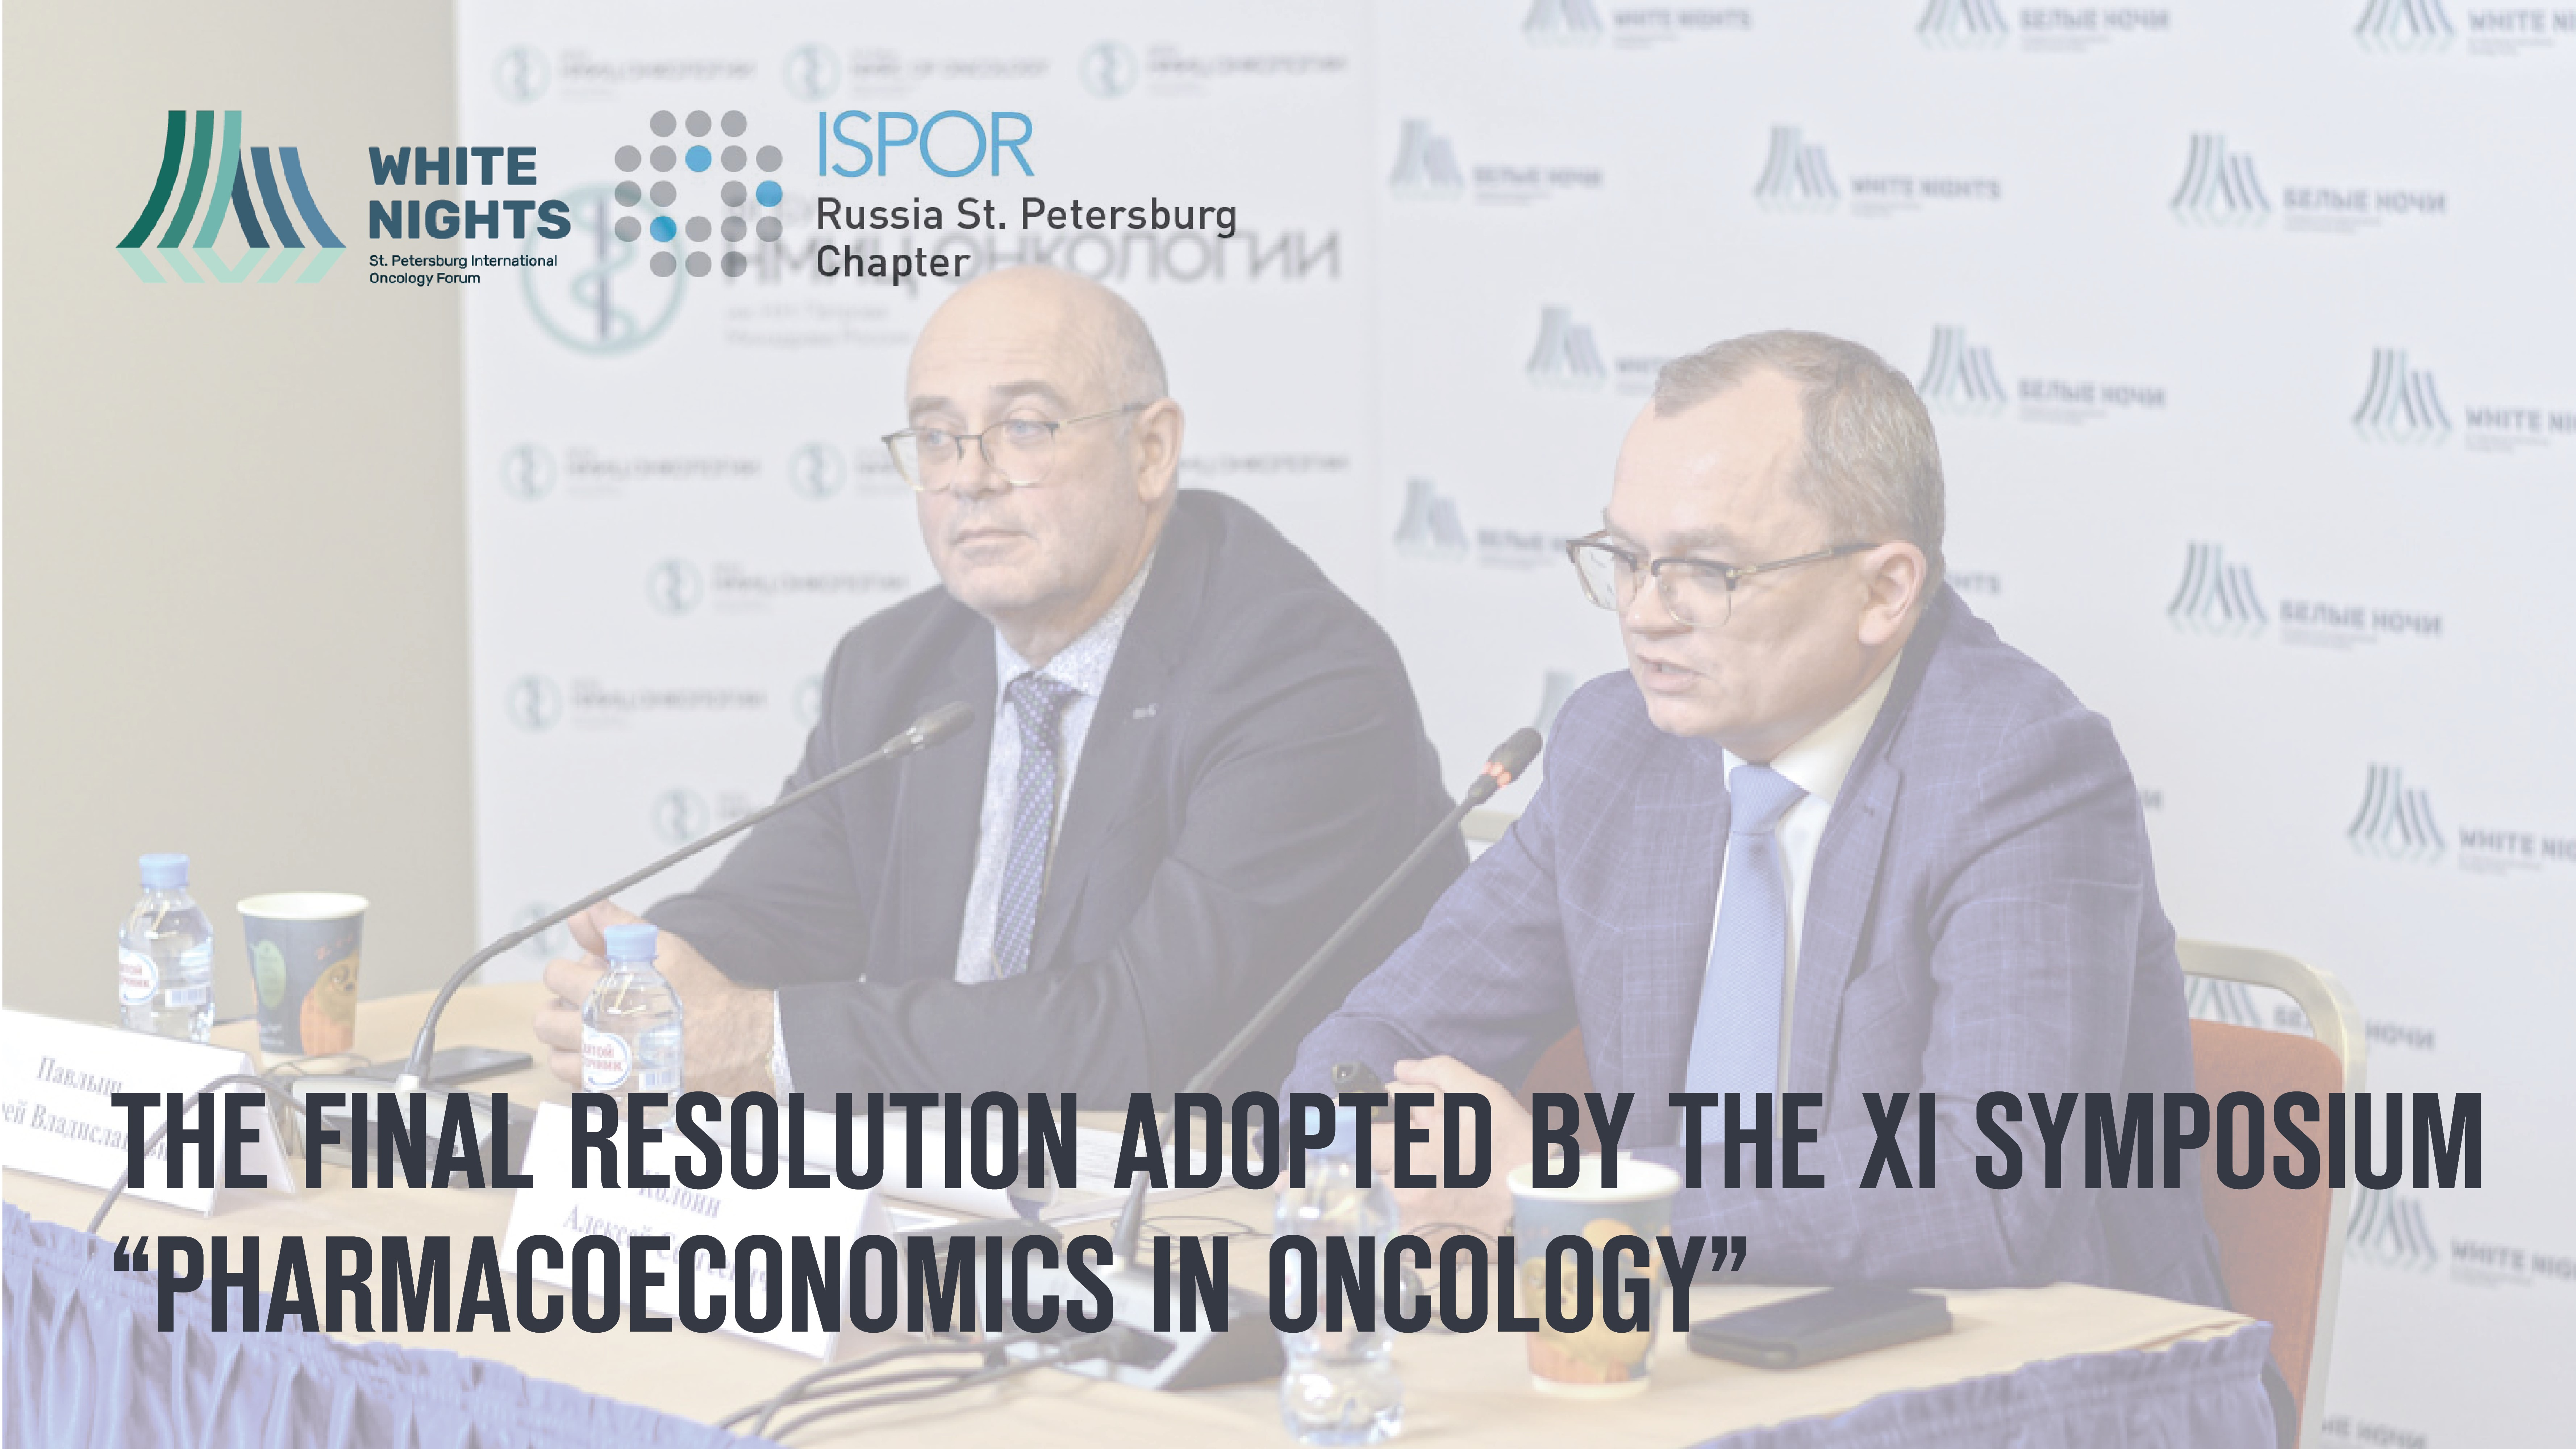 "The XI Symposium ""Pharmacoeconomics in Oncology"" was held within the VI St. Petersburg International Oncology Forum ""White Nights 2020"" on June 25th, 2020"